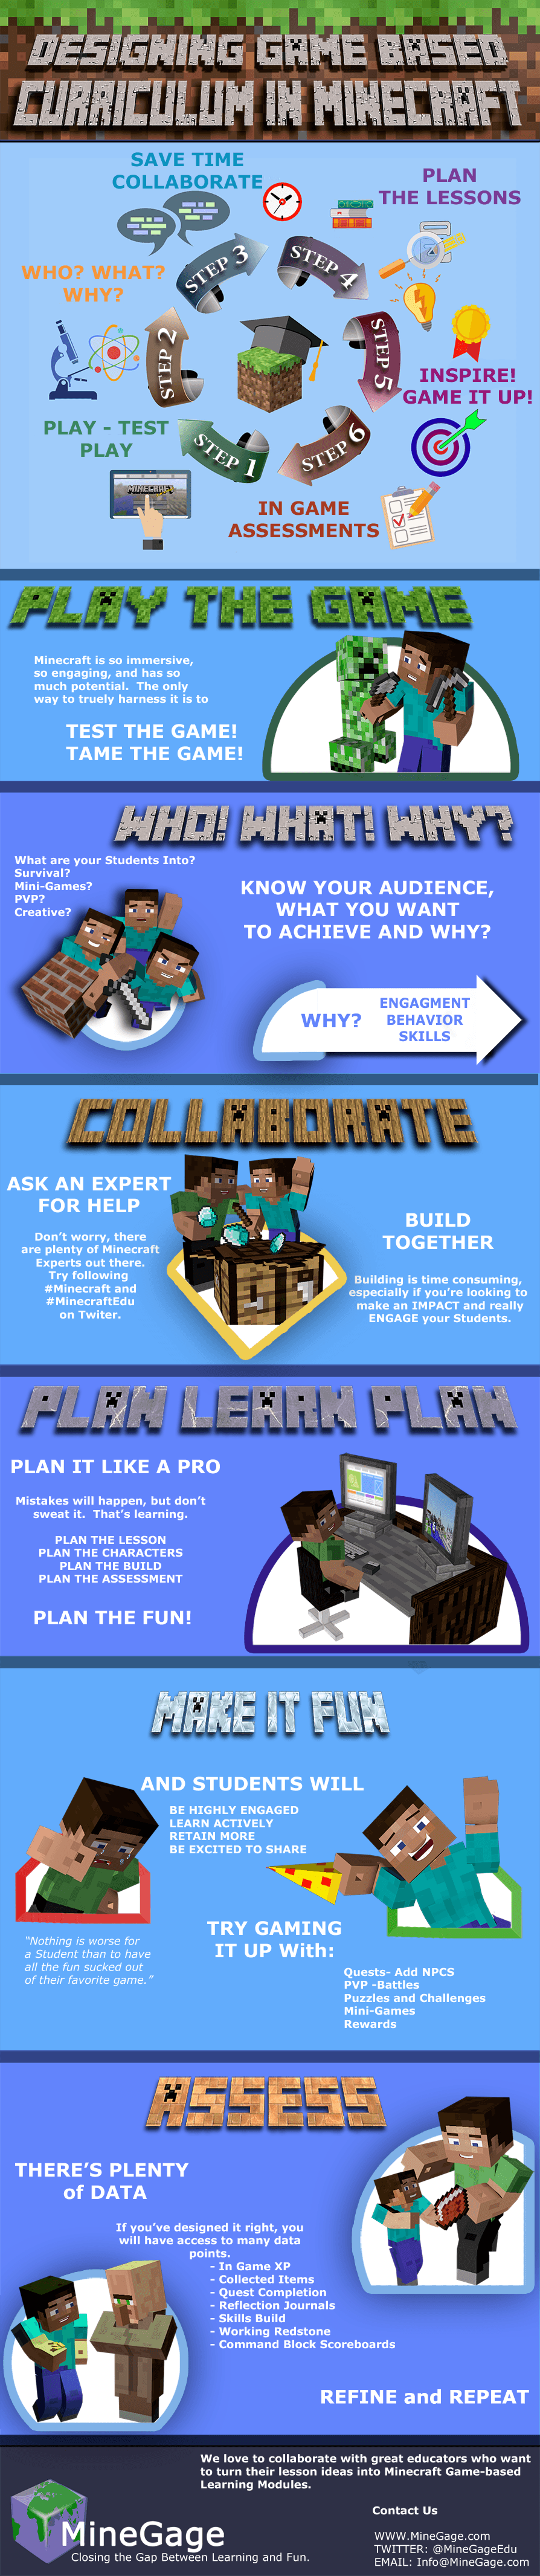 Designing a Game Based Curriculum in Minecraft Infographic